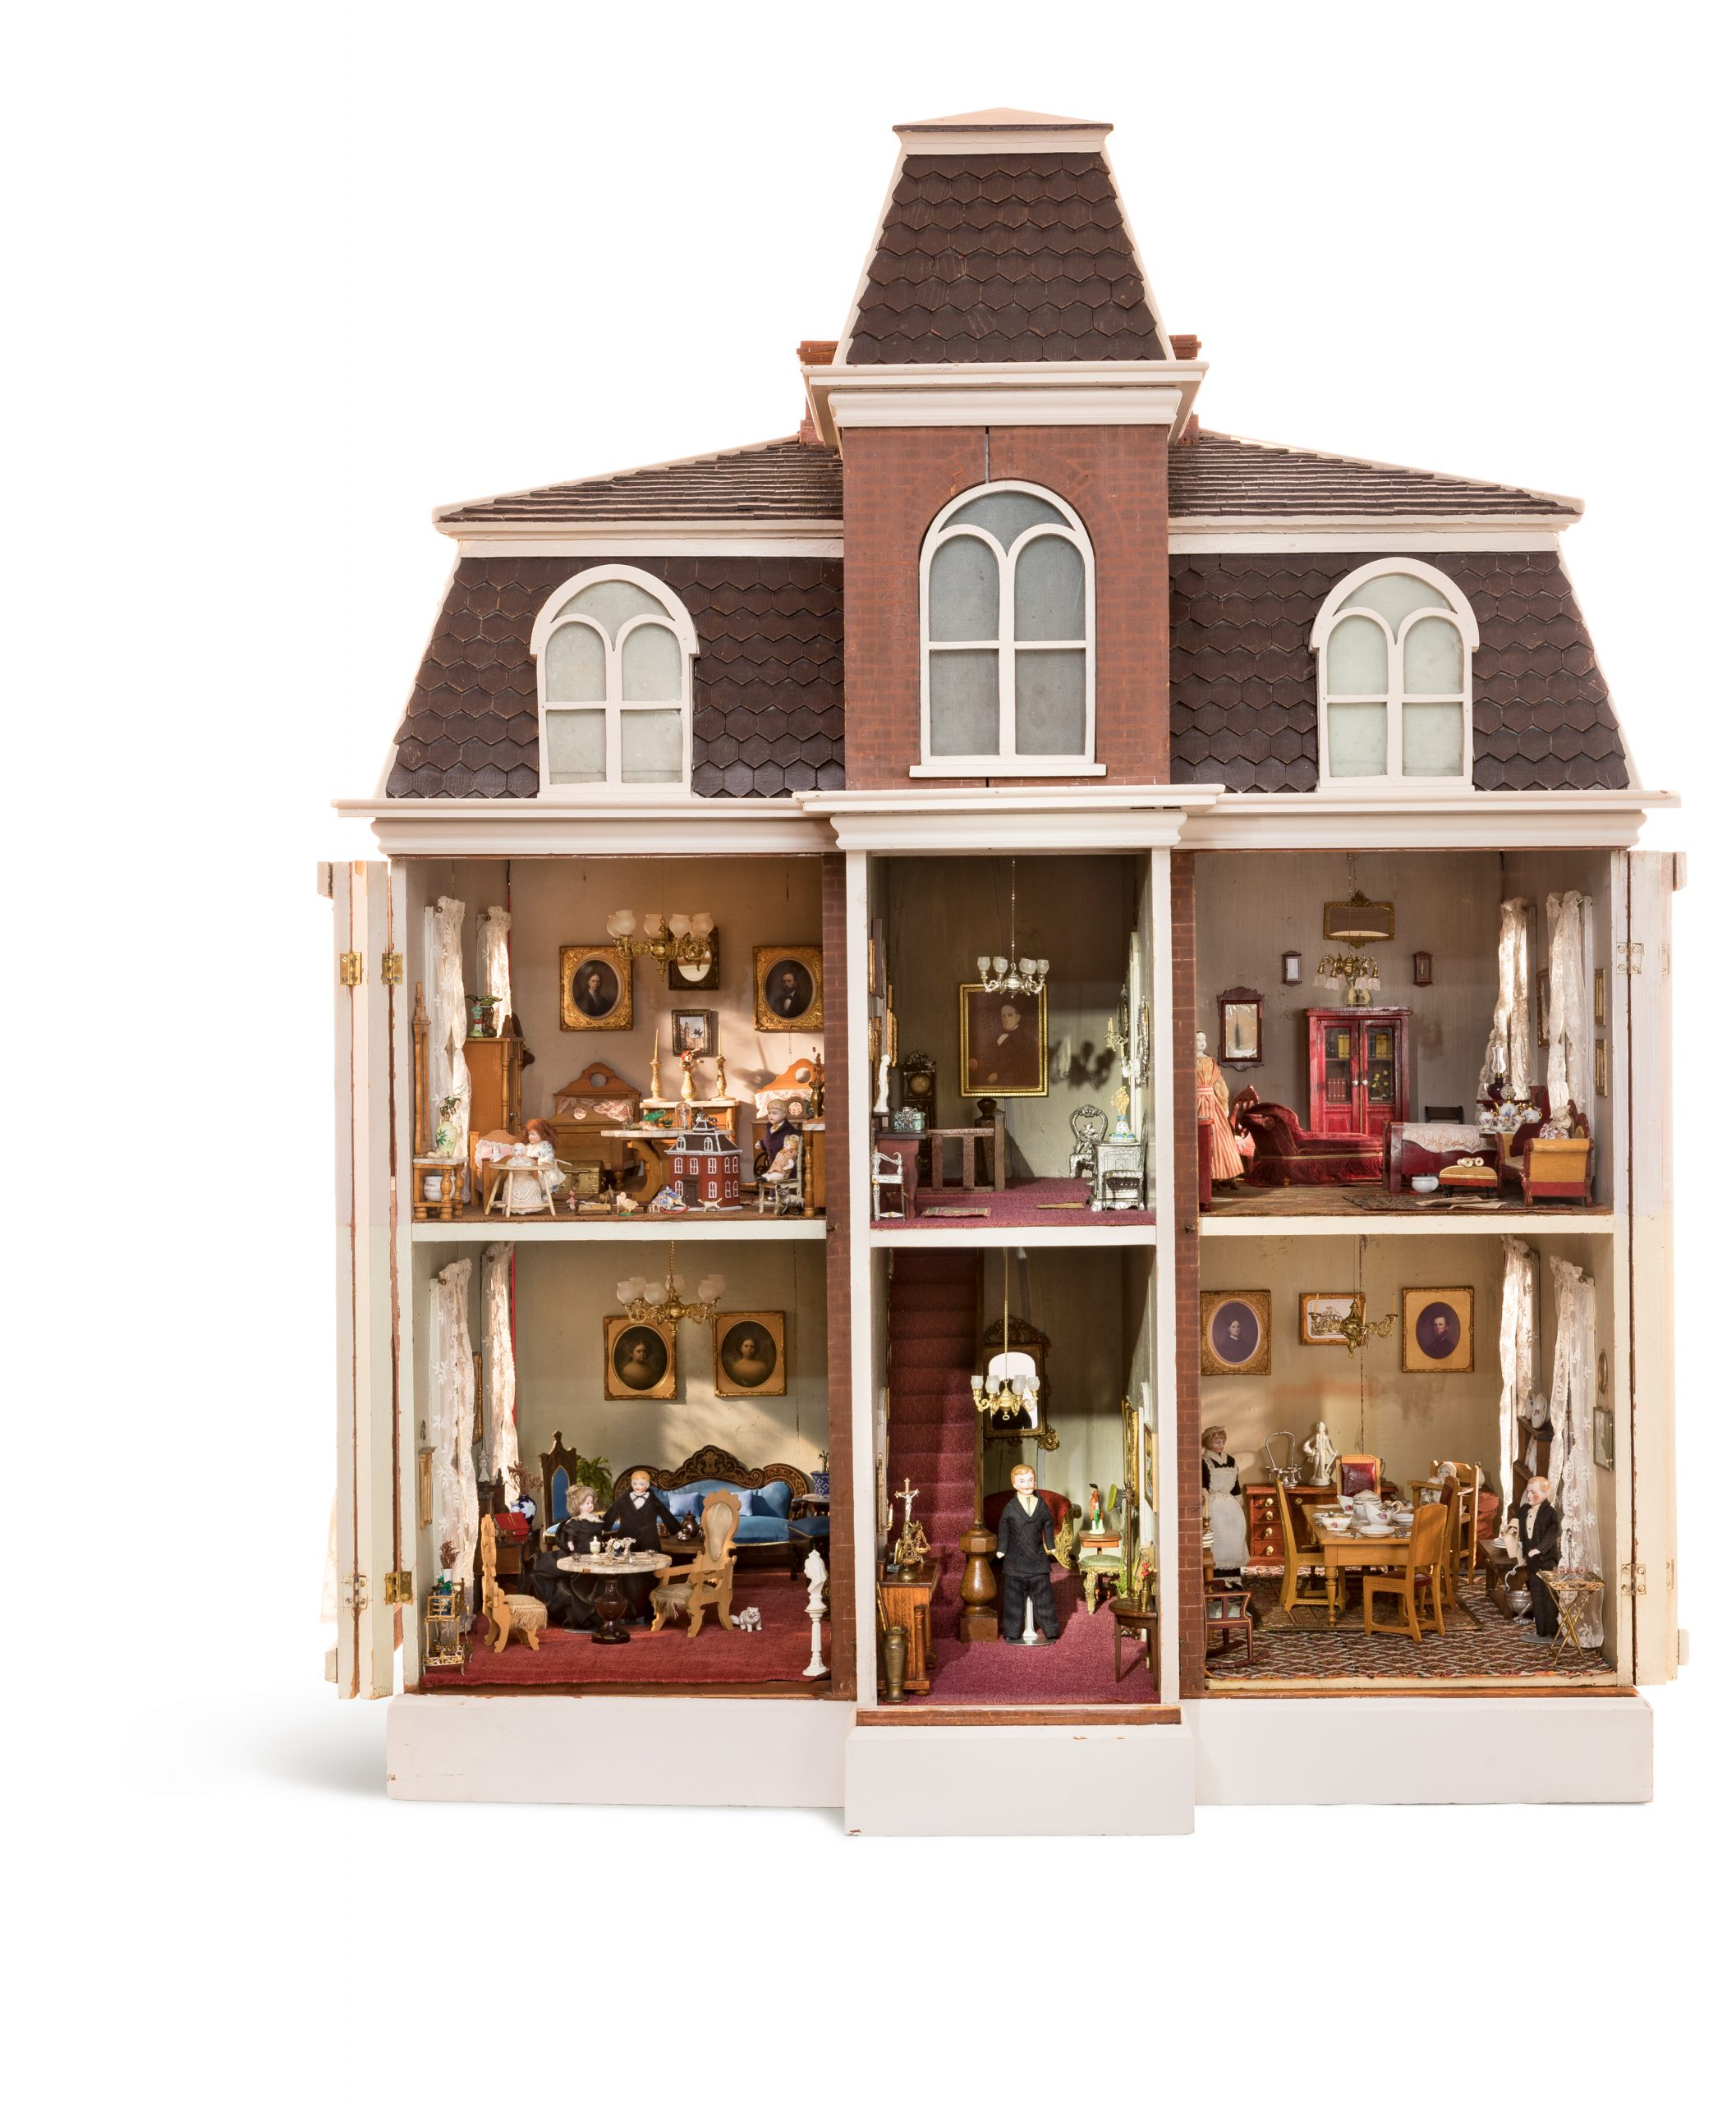 Dollhouse Histories: The Pierce Dollhouse, 1868